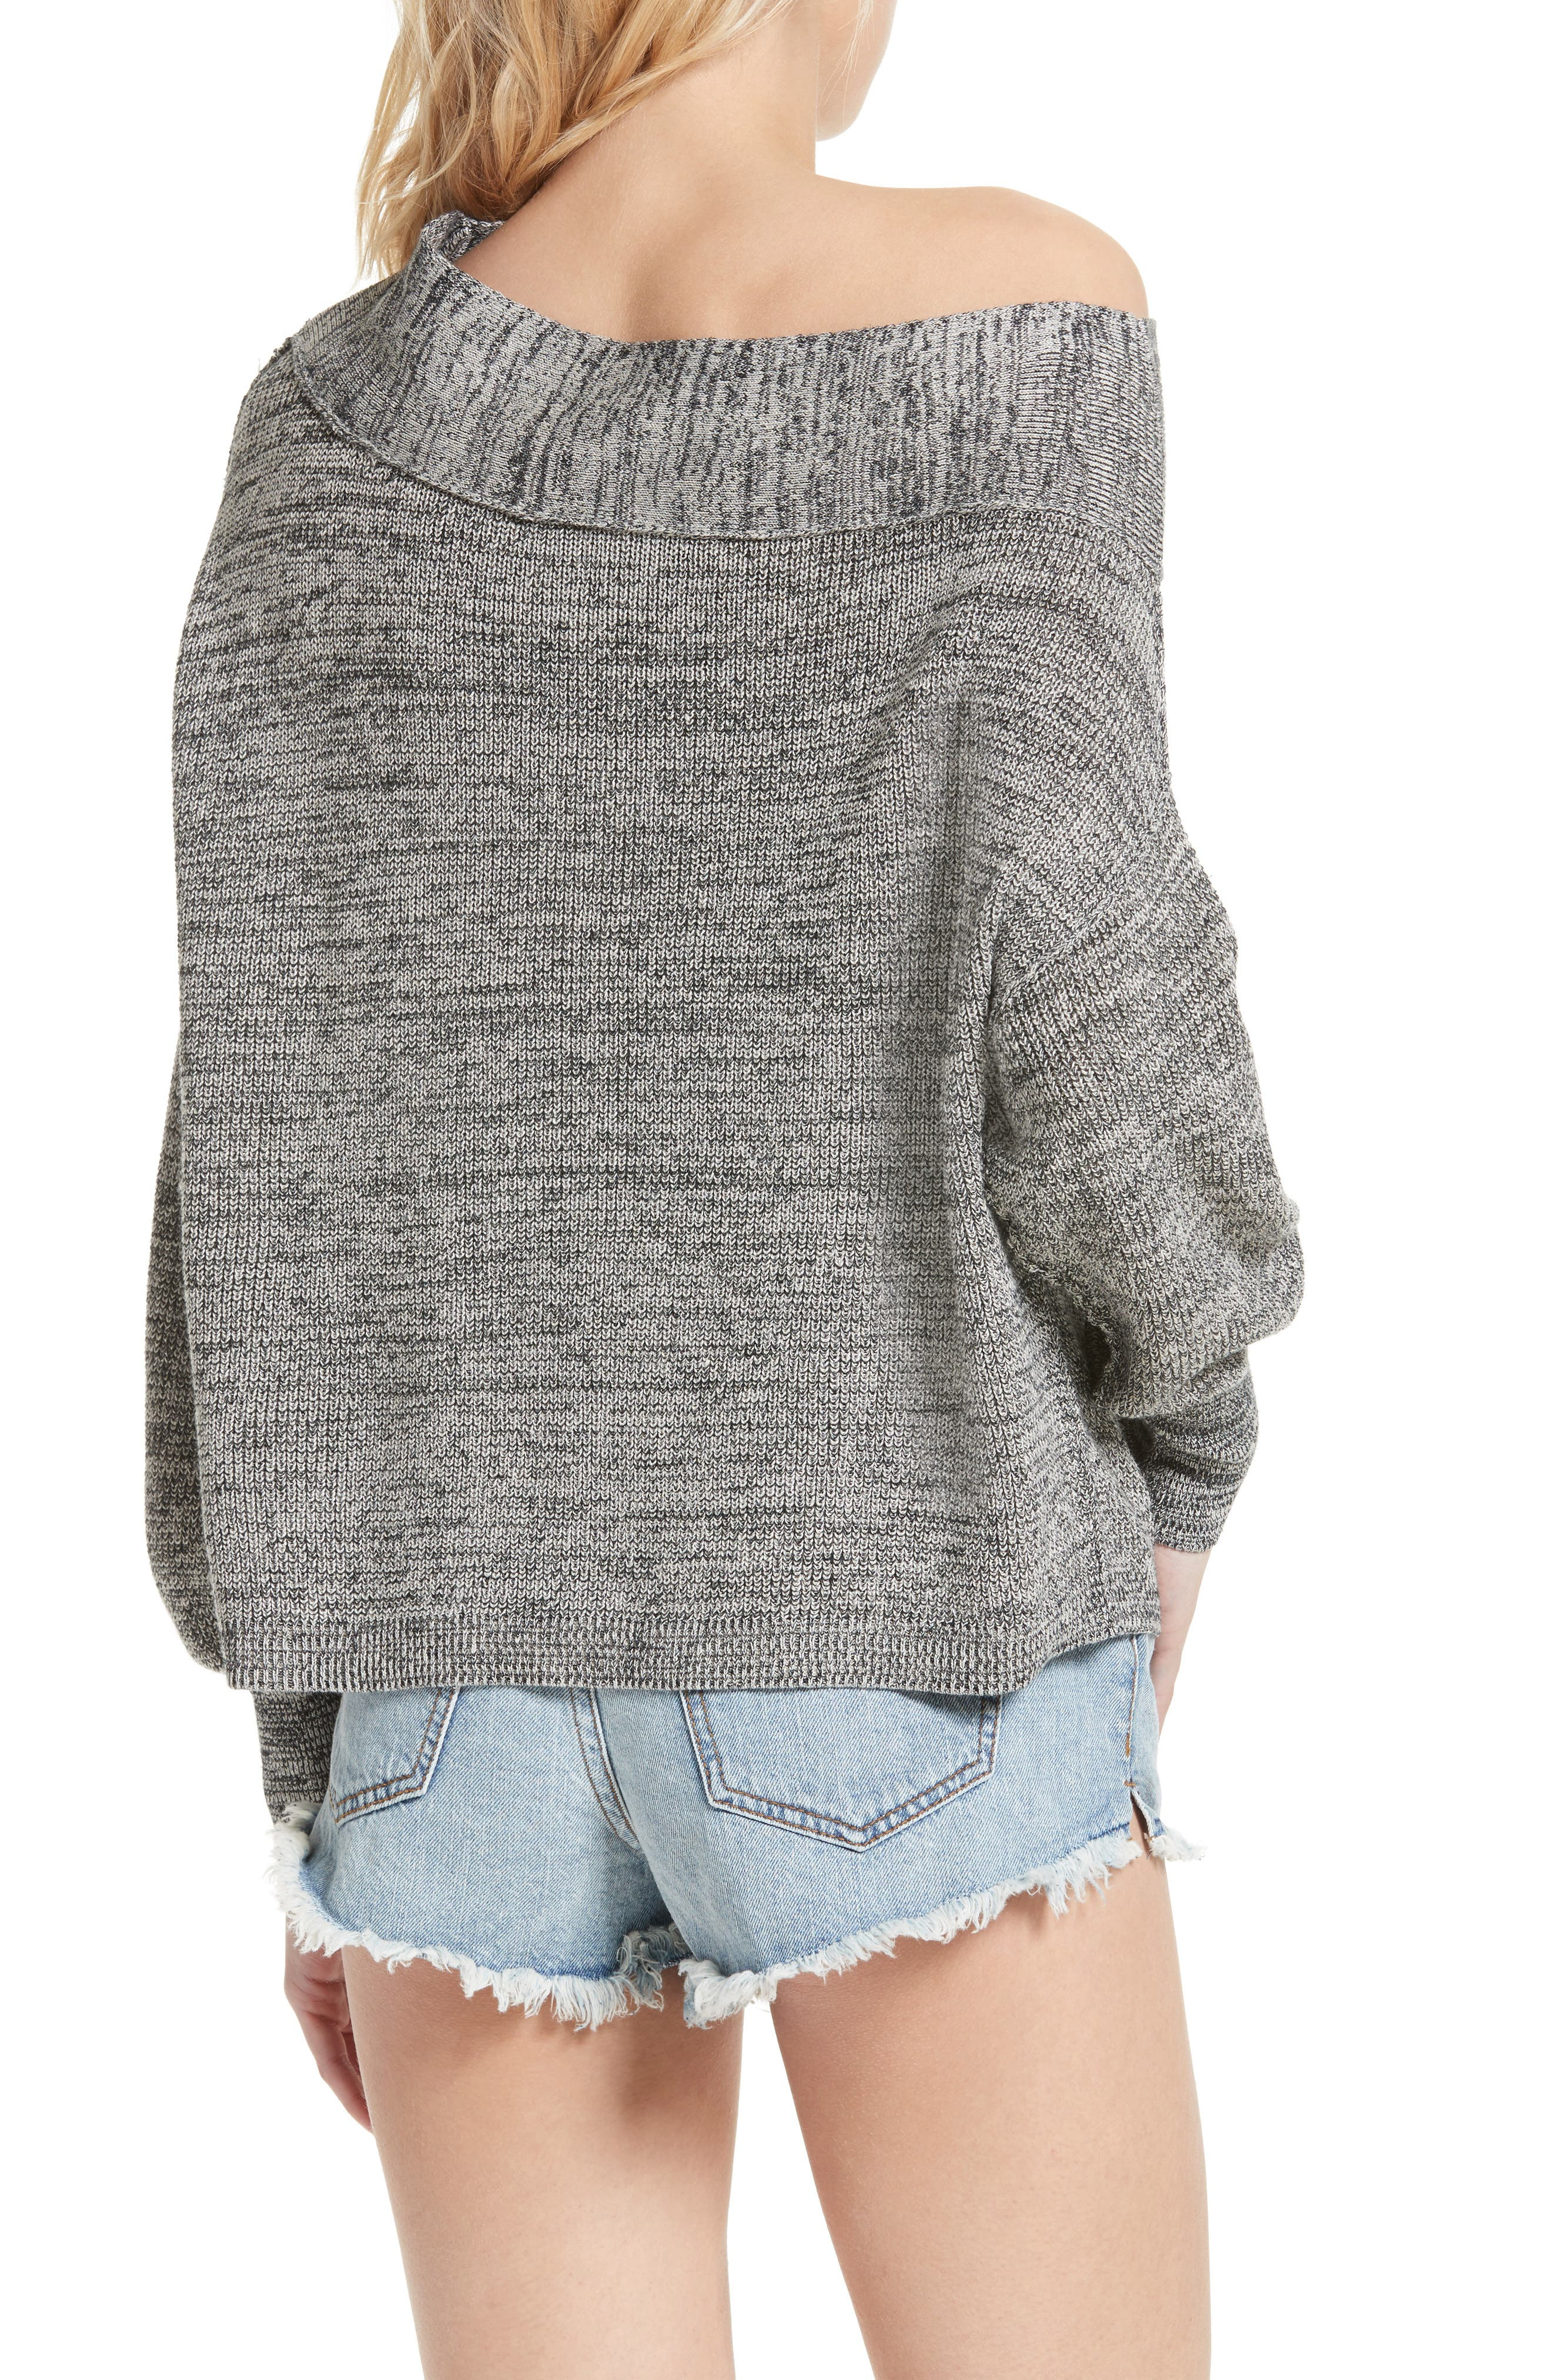 Alana Pullover Sweater,                             Alternate thumbnail 2, color,                             030